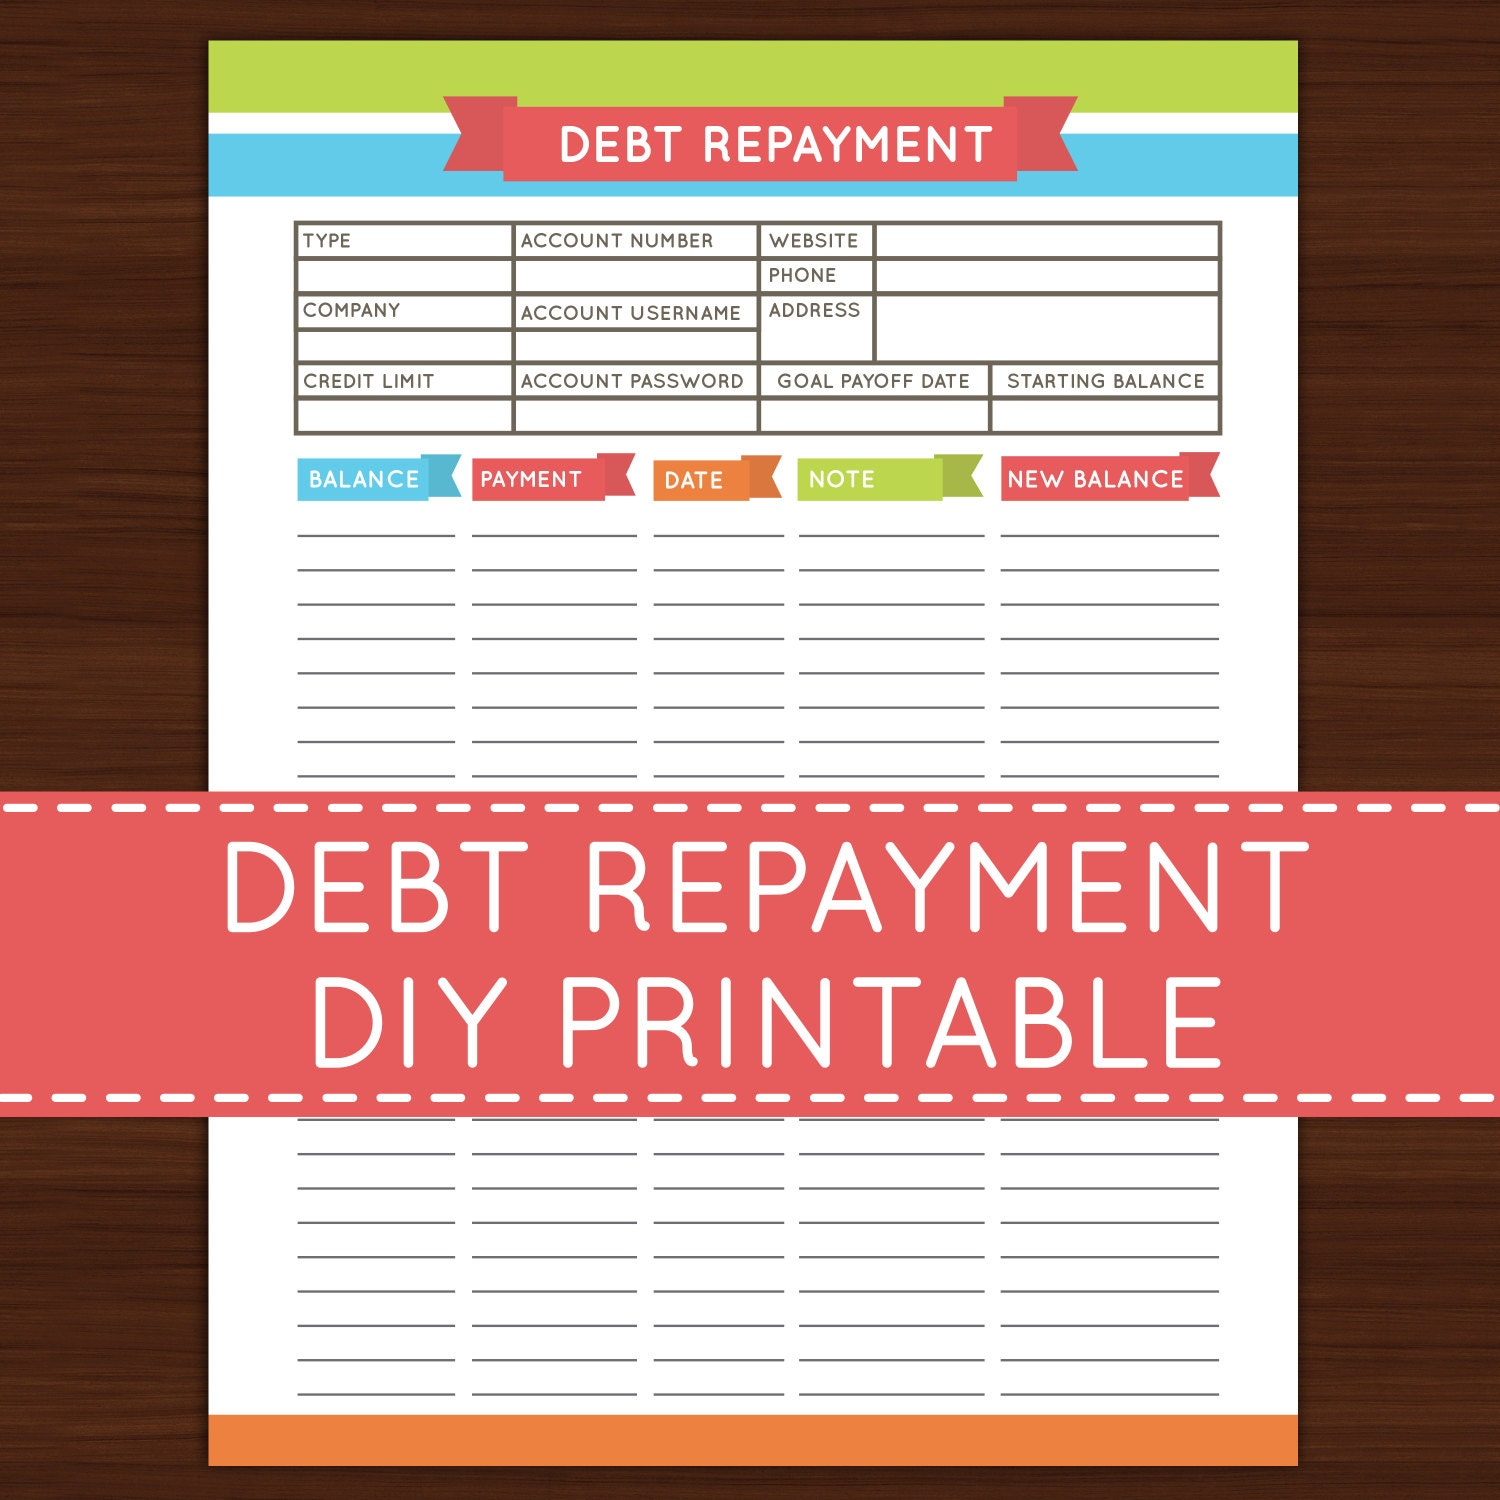 Simplicity image with regard to debt payoff printable